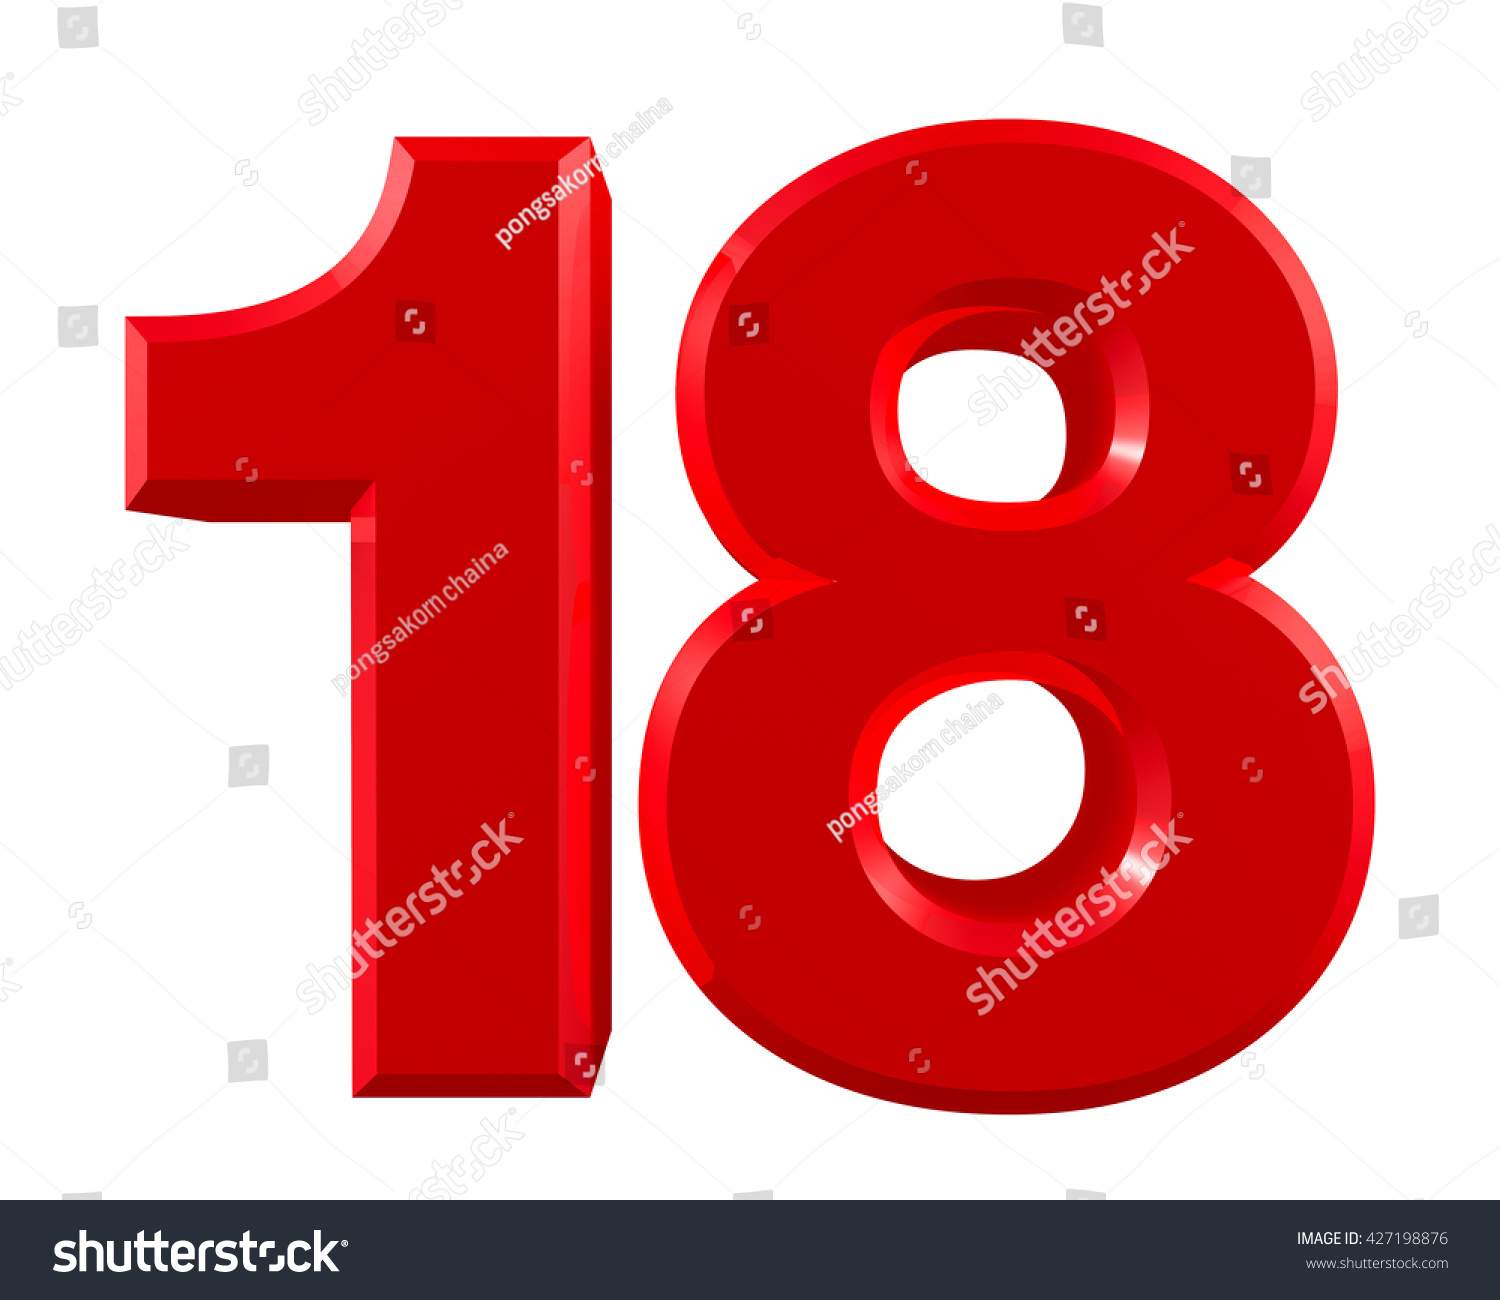 red numbers 18 on white background stock illustration free clip art numbers 1-10 free clip art numbers and letters